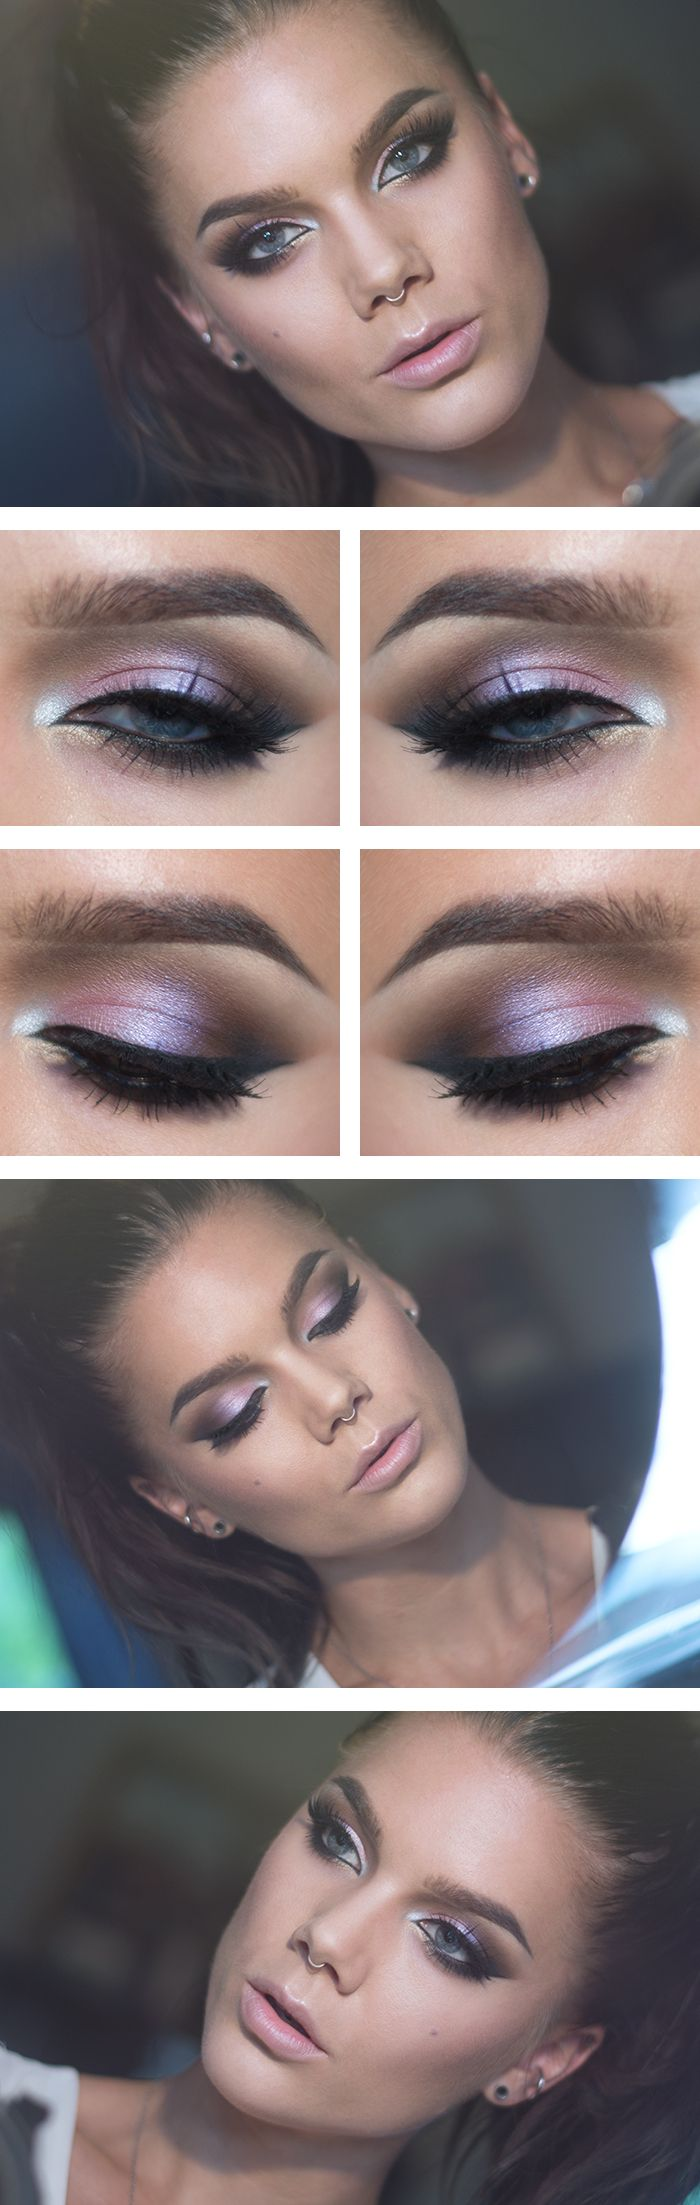 Stunning eye makeup  #eyes #makeup #beauty #mua #bbloggers